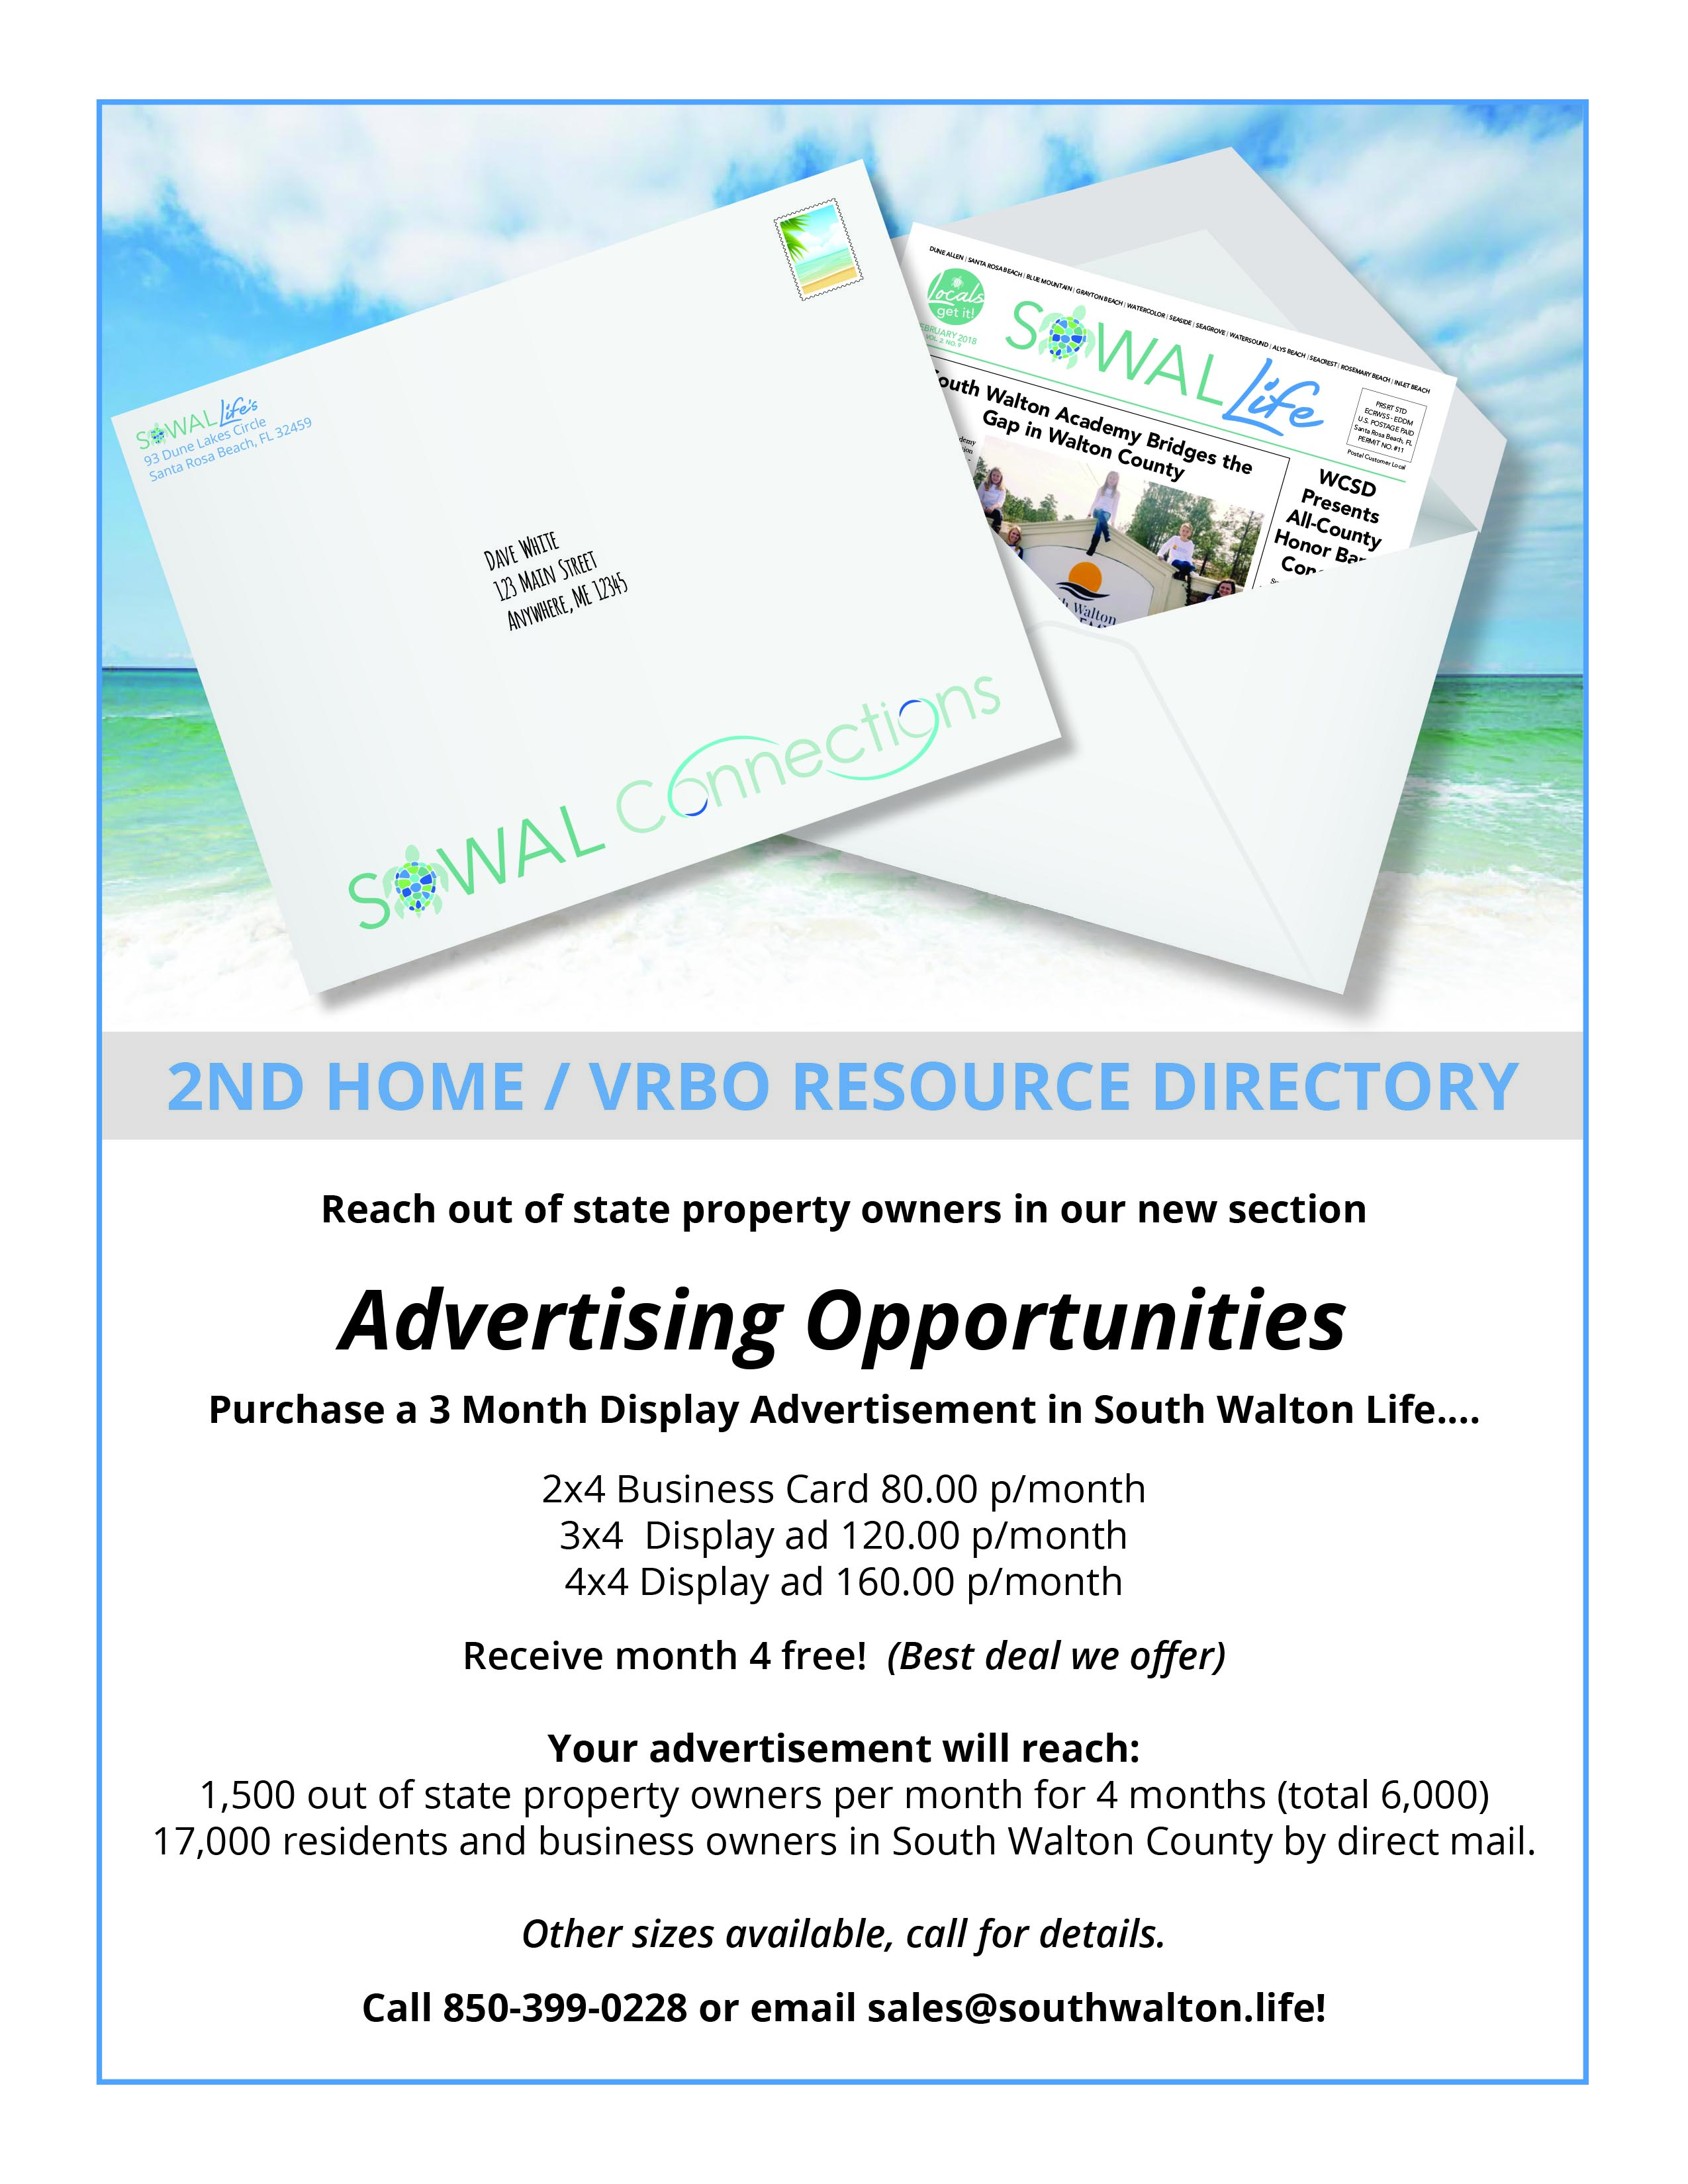 South Walton Life Connections Rate Card